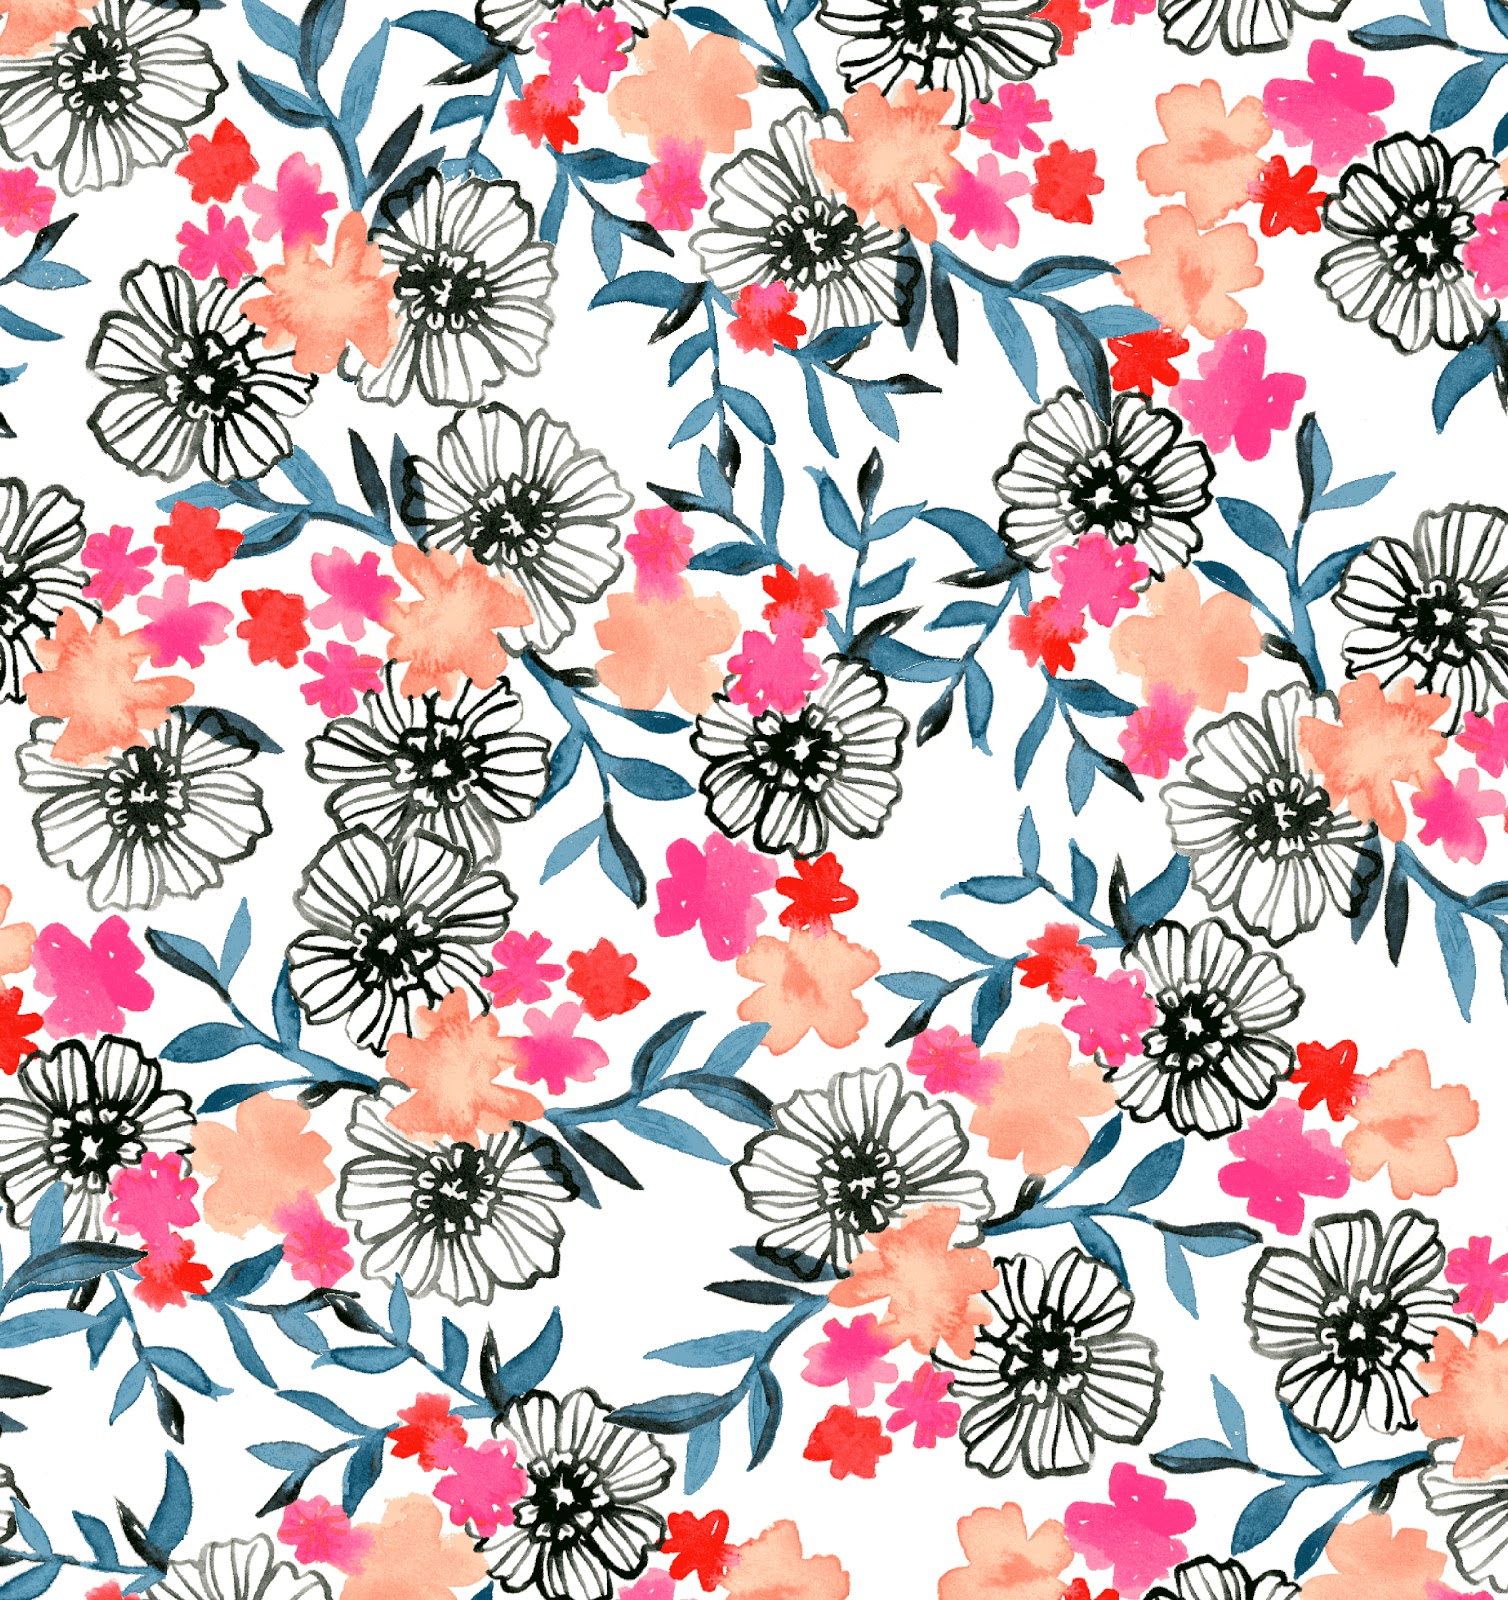 floral prints kelman melissa flower pattern watercolor watercolour wallpapers worked wanted personal illustration surface fabrik papier florals abstract behance pintura